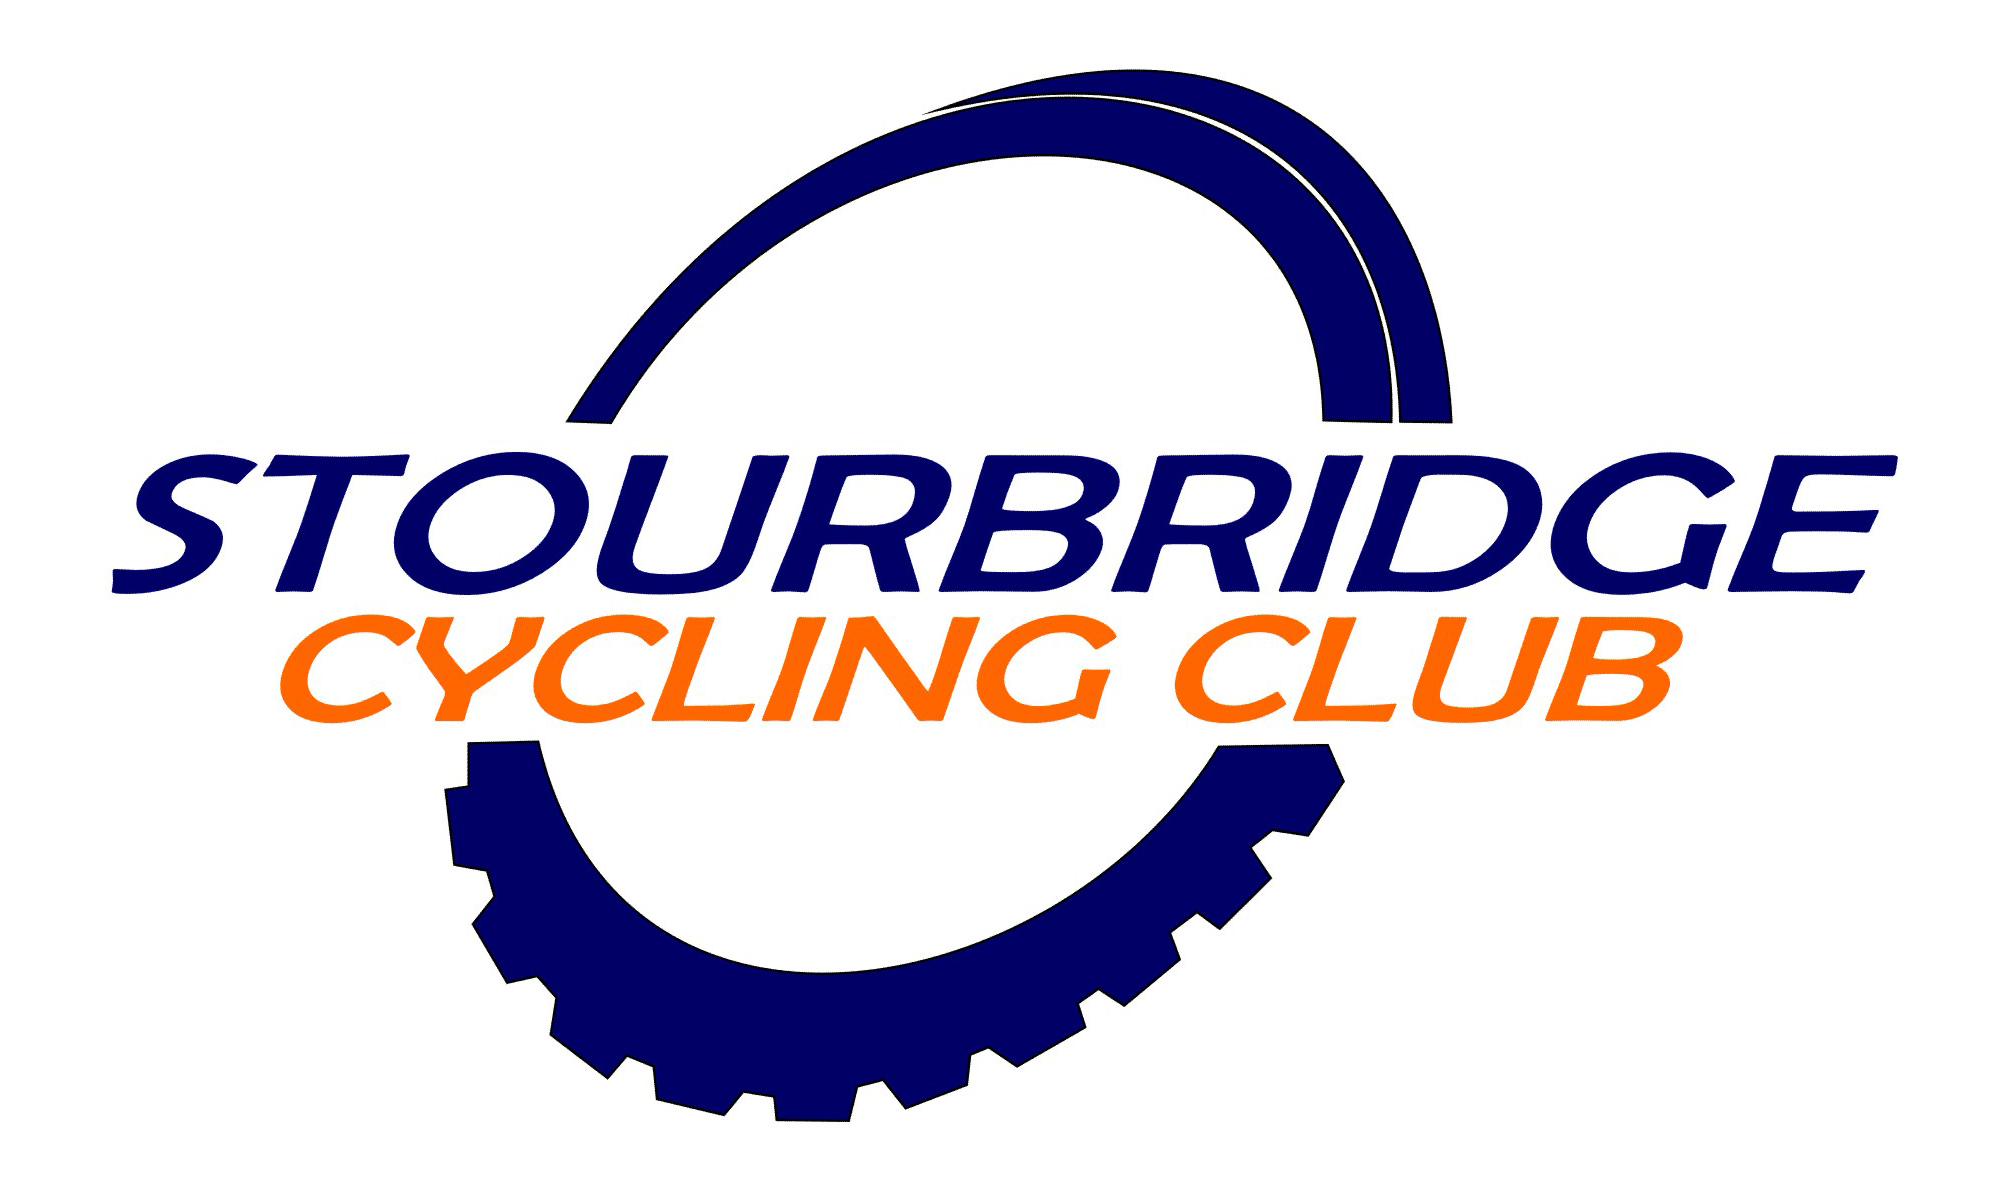 Stourbridge Cycling Club